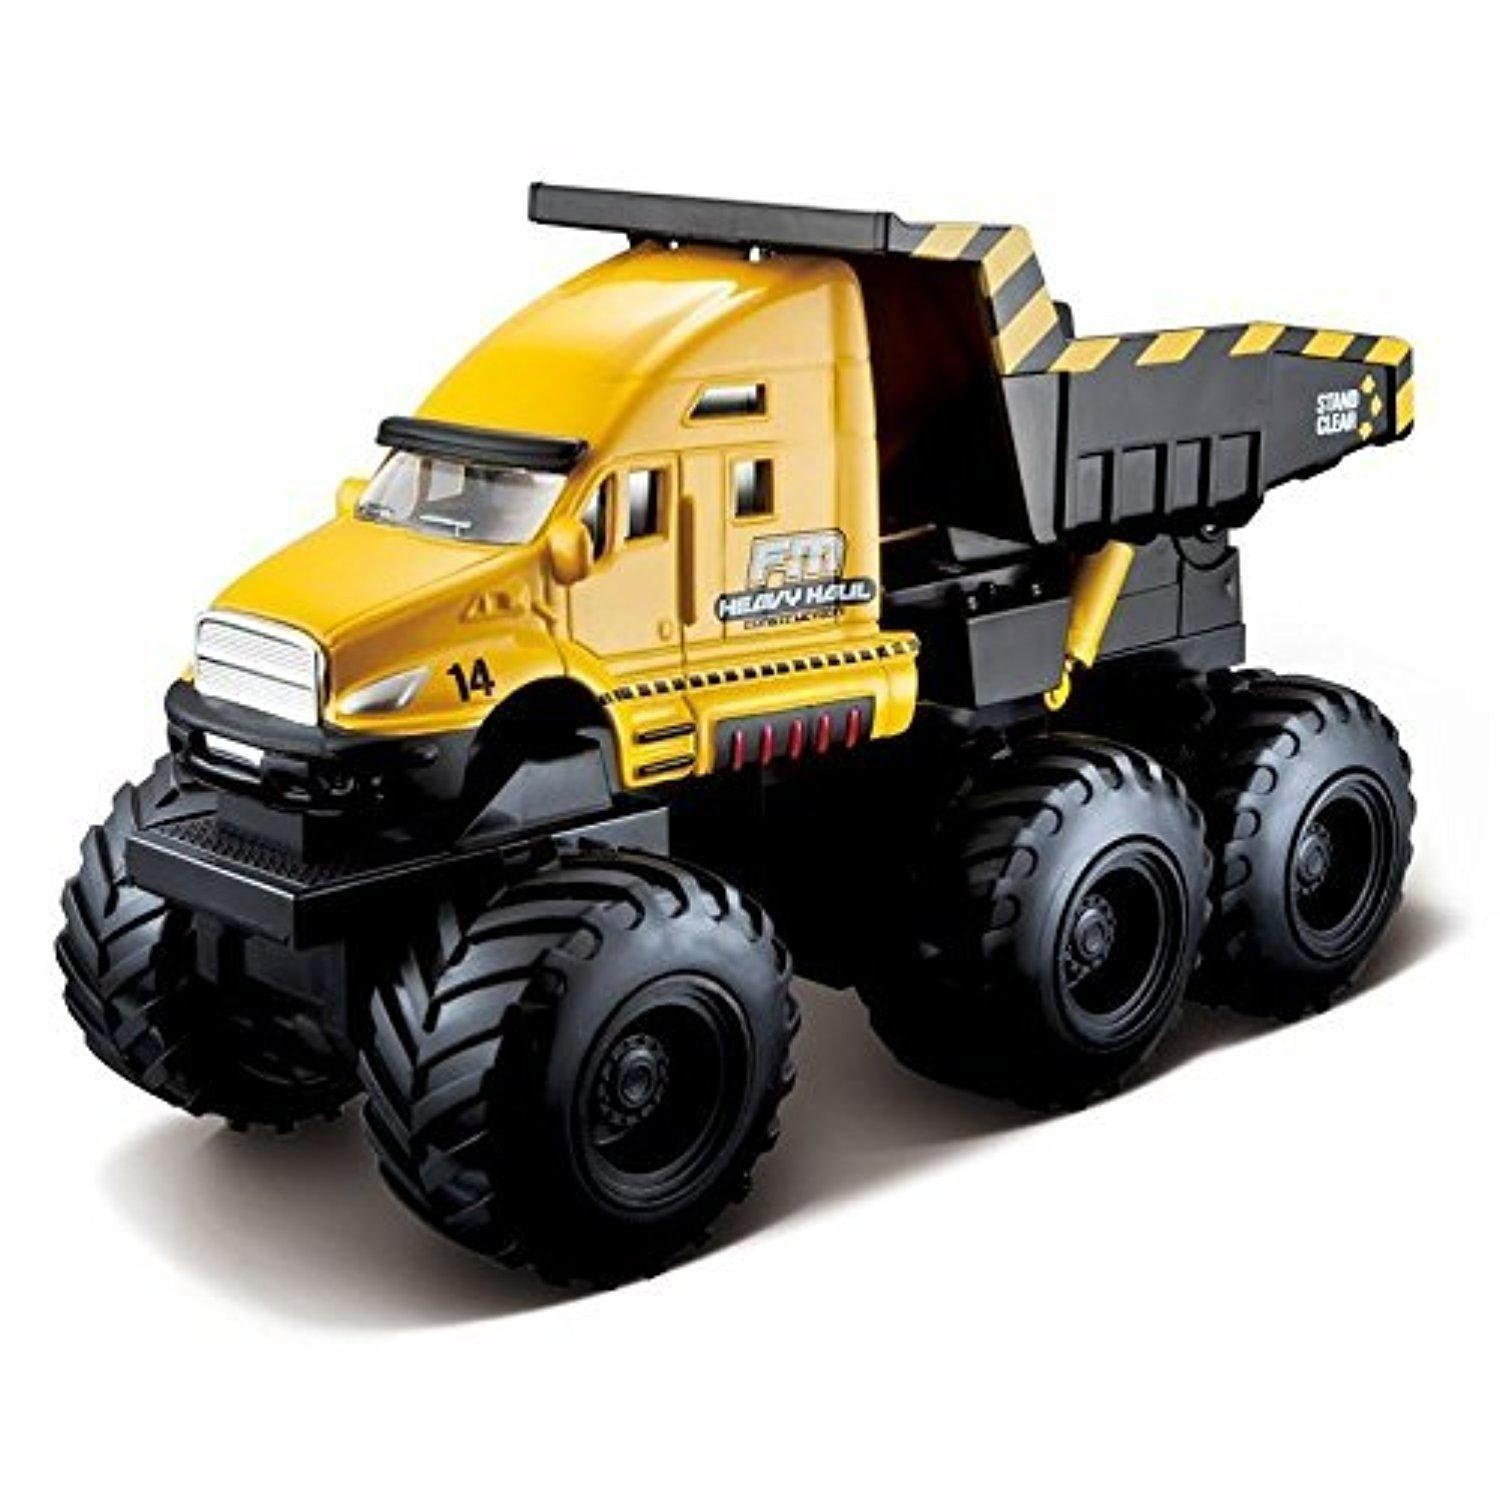 online store maisto fresh metal builder zone quarry monsters maisto fresh metal builder zone quarry monsters yellow construction dump truck by hts